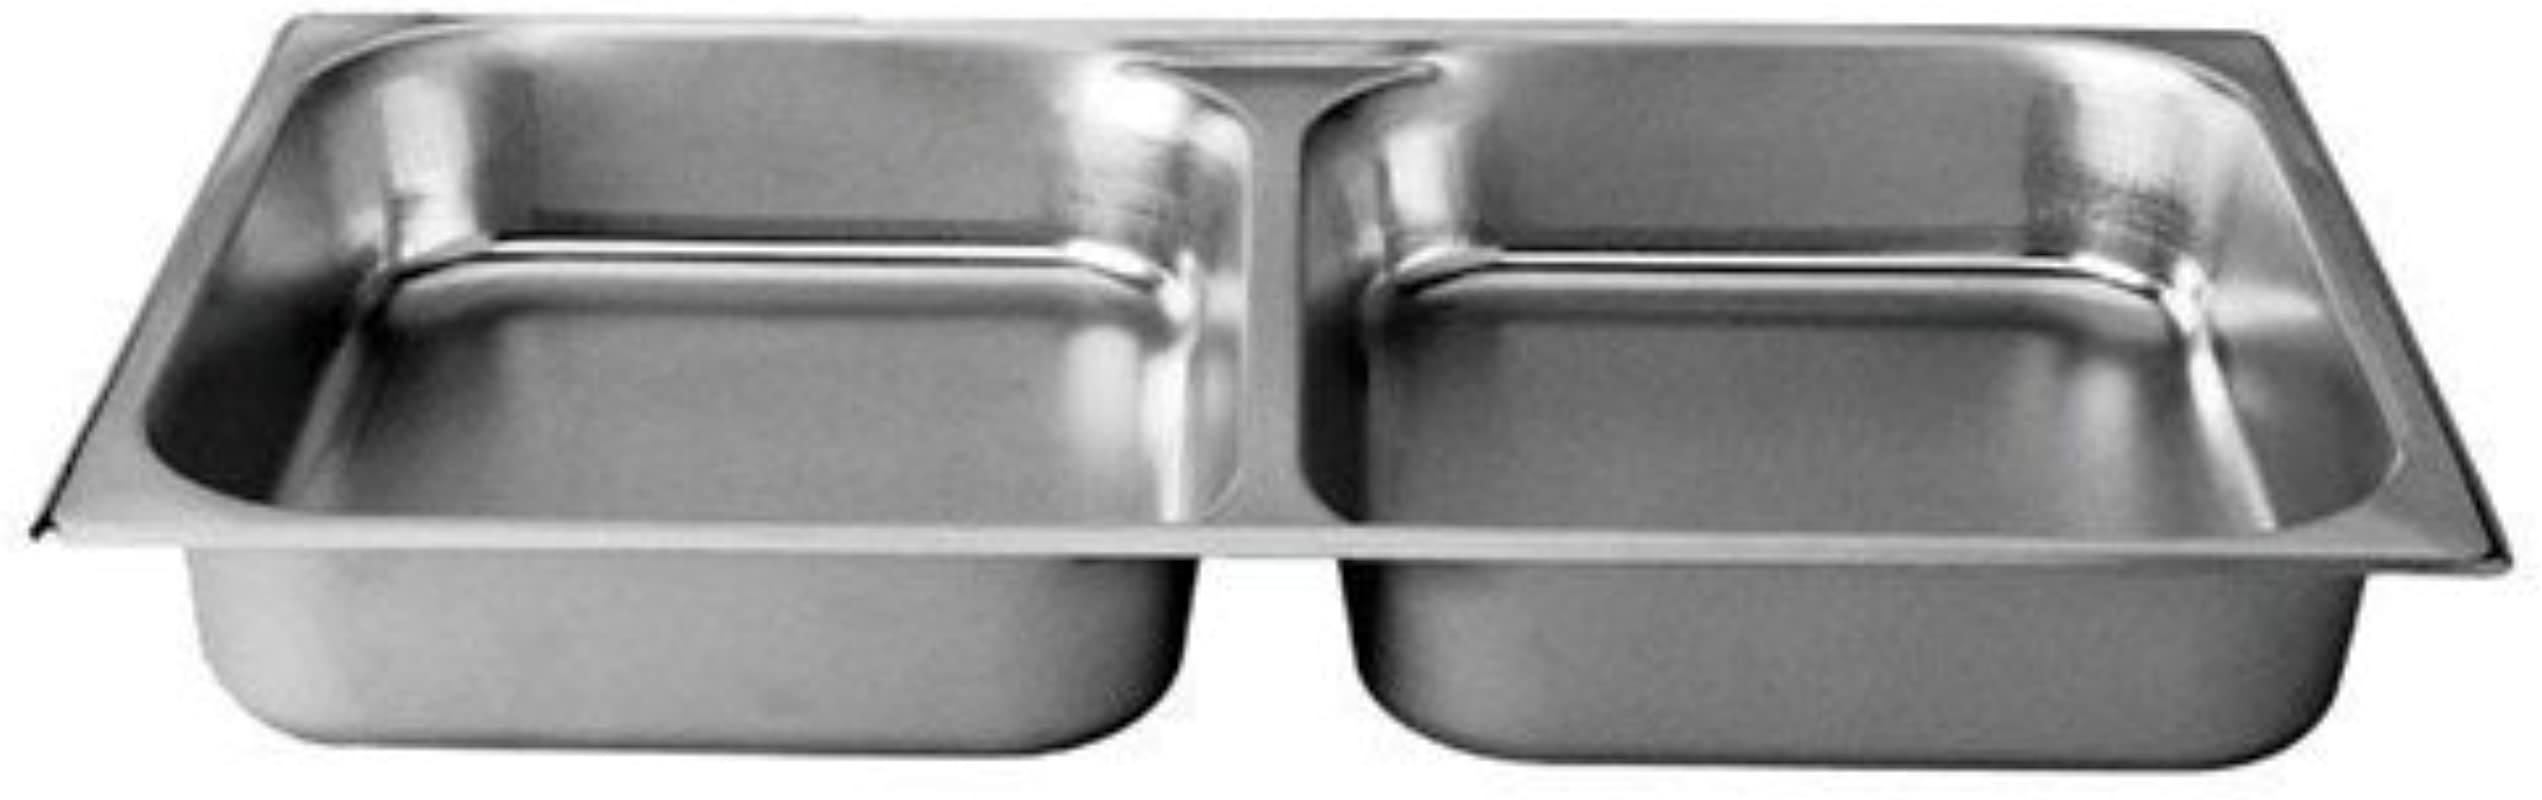 Divided Full Size Stainless Steel Food Pan 2 1 2 Inch Deep